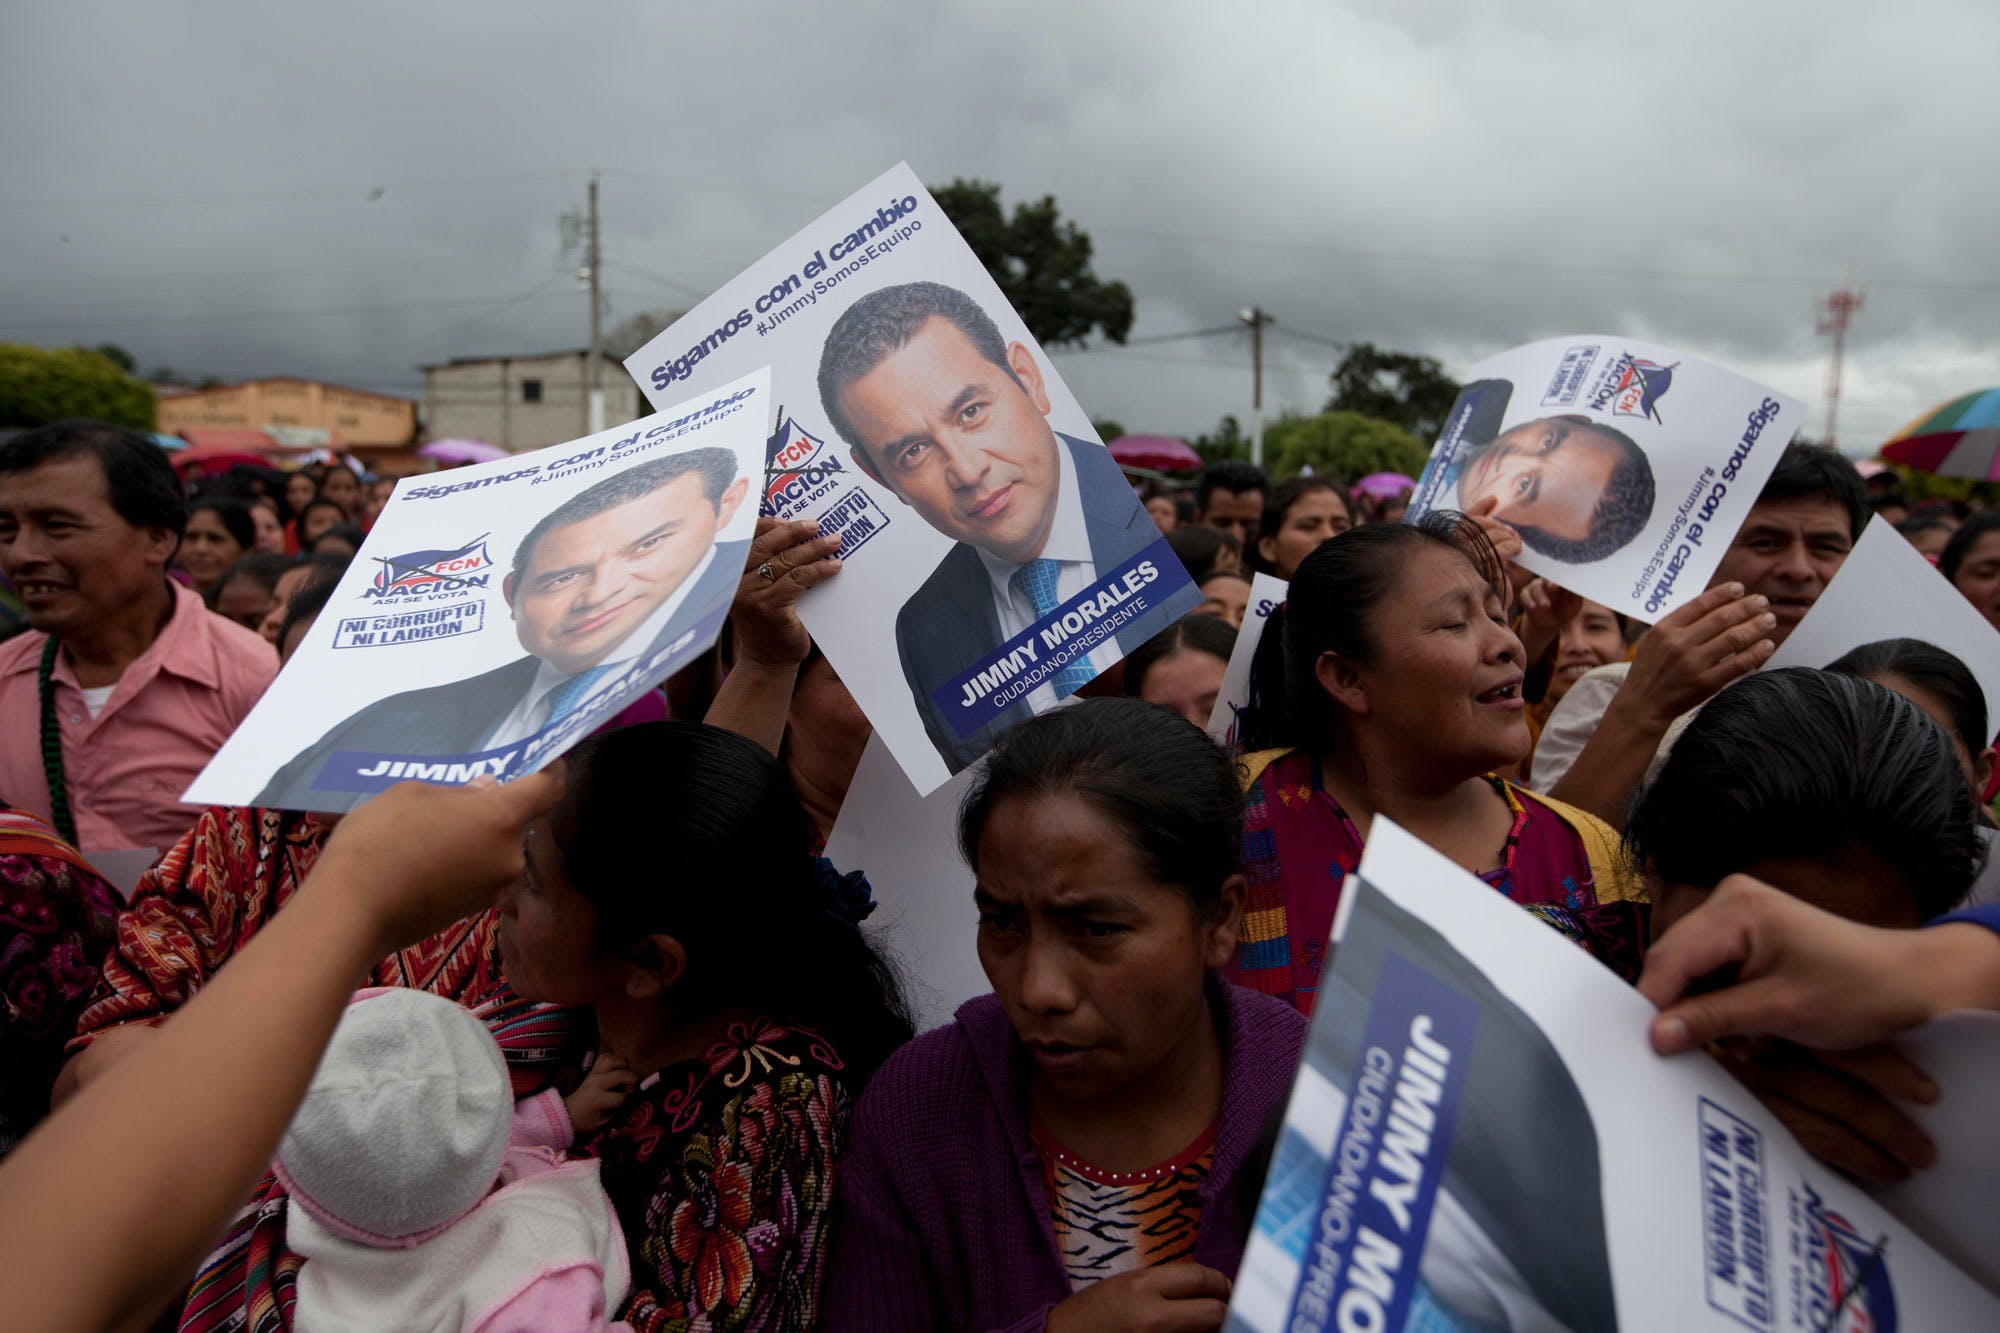 Campaign posters featuring presidential candidate Jimmy Morales of the National Front of Convergence party, are passed out during a rally, in Chichicastenango, Guatemala, Saturday, Oct. 17, 2015. Voters will head to the polls on Oct. 25 to choose a new leader in the presidential run-off. (AP Photo/Moises Castillo)